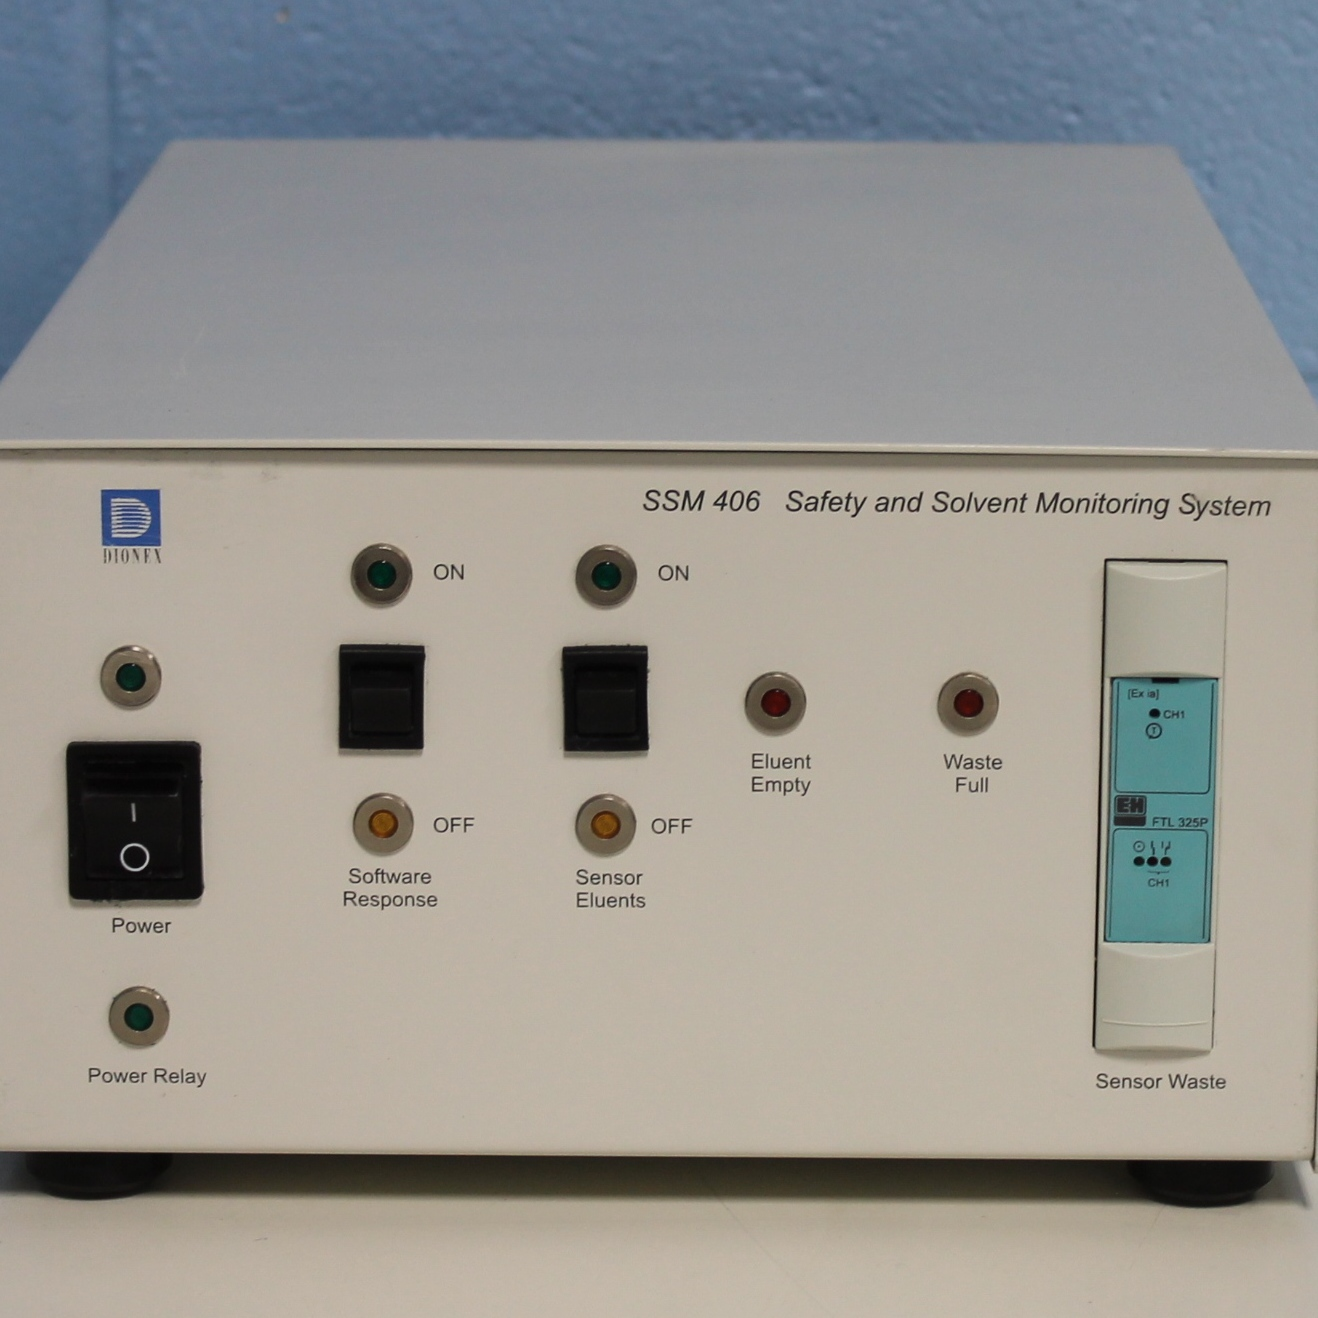 Dionex SSM 406 Safety and Solvent Monitoring System Module Image